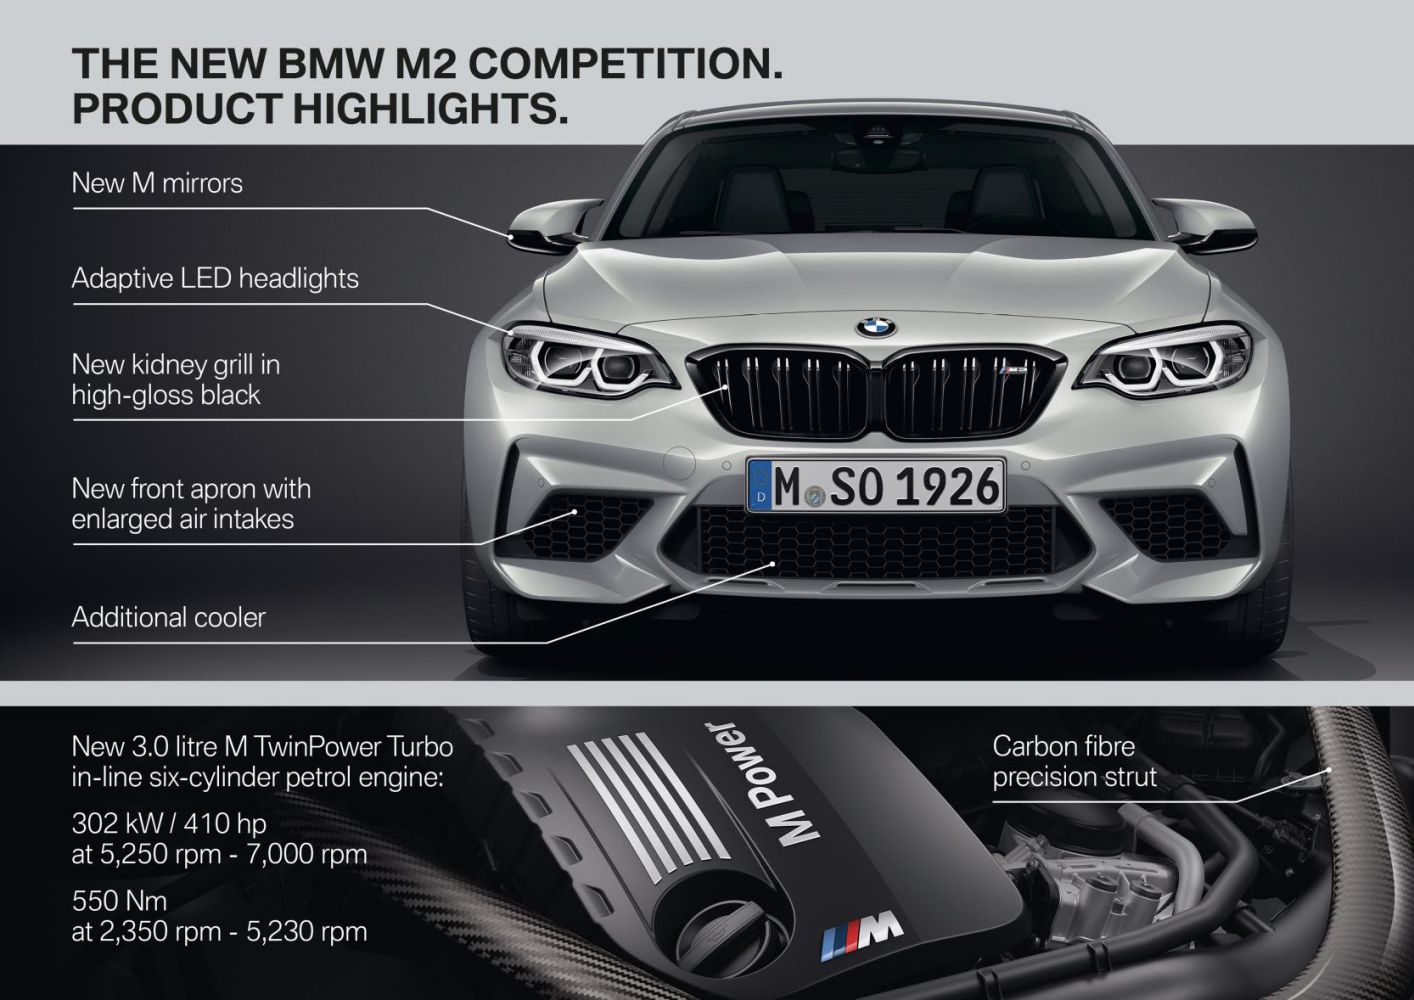 2019 Bmw M2 Competition Specs And Pricing Carconversation